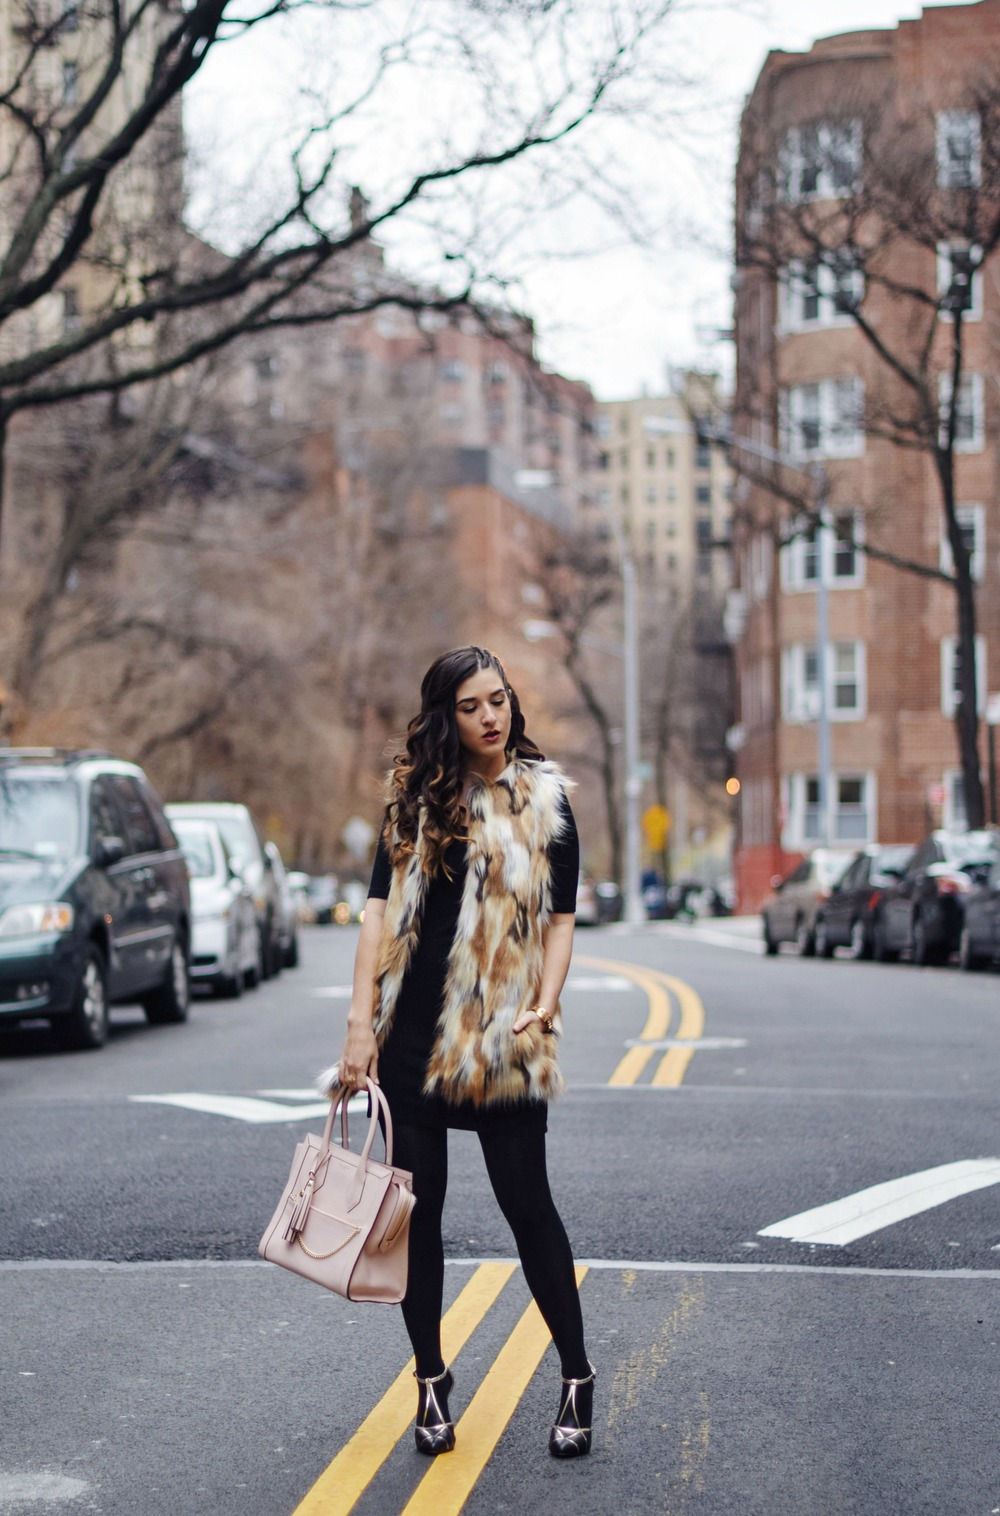 Calico Fur Henri Bendel Structured Leather Bag Louboutins & Love Fashion Blog Esther Santer NYC Street Style Blogger Zara Gold Jewelry Bracelet Pink Purse Vest Hair Inspo Outfit OOTD Cornrows Black Dress LBD Handbag Shopping Girl Women Pocketbook Fall.jpg